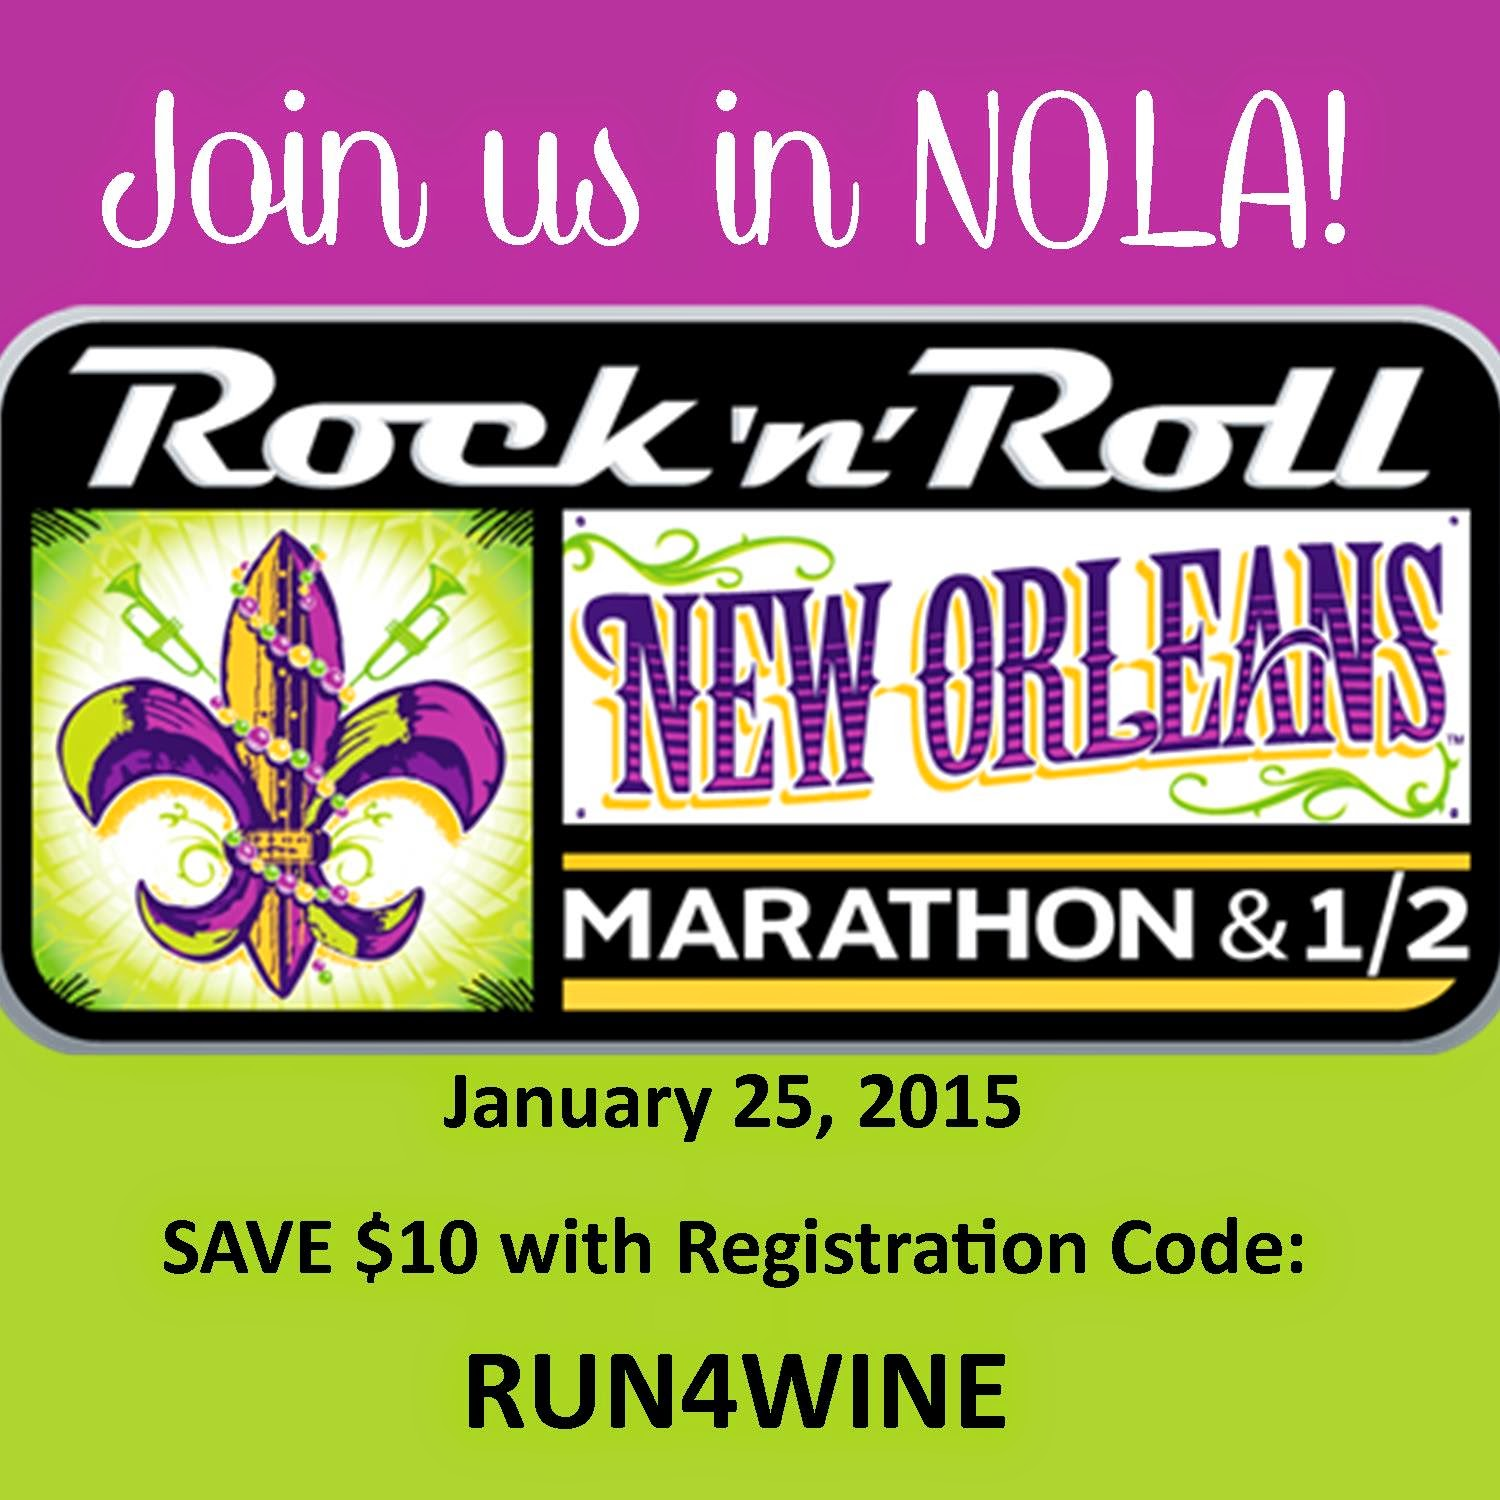 Save $10 at Rock n Roll New Orleans!